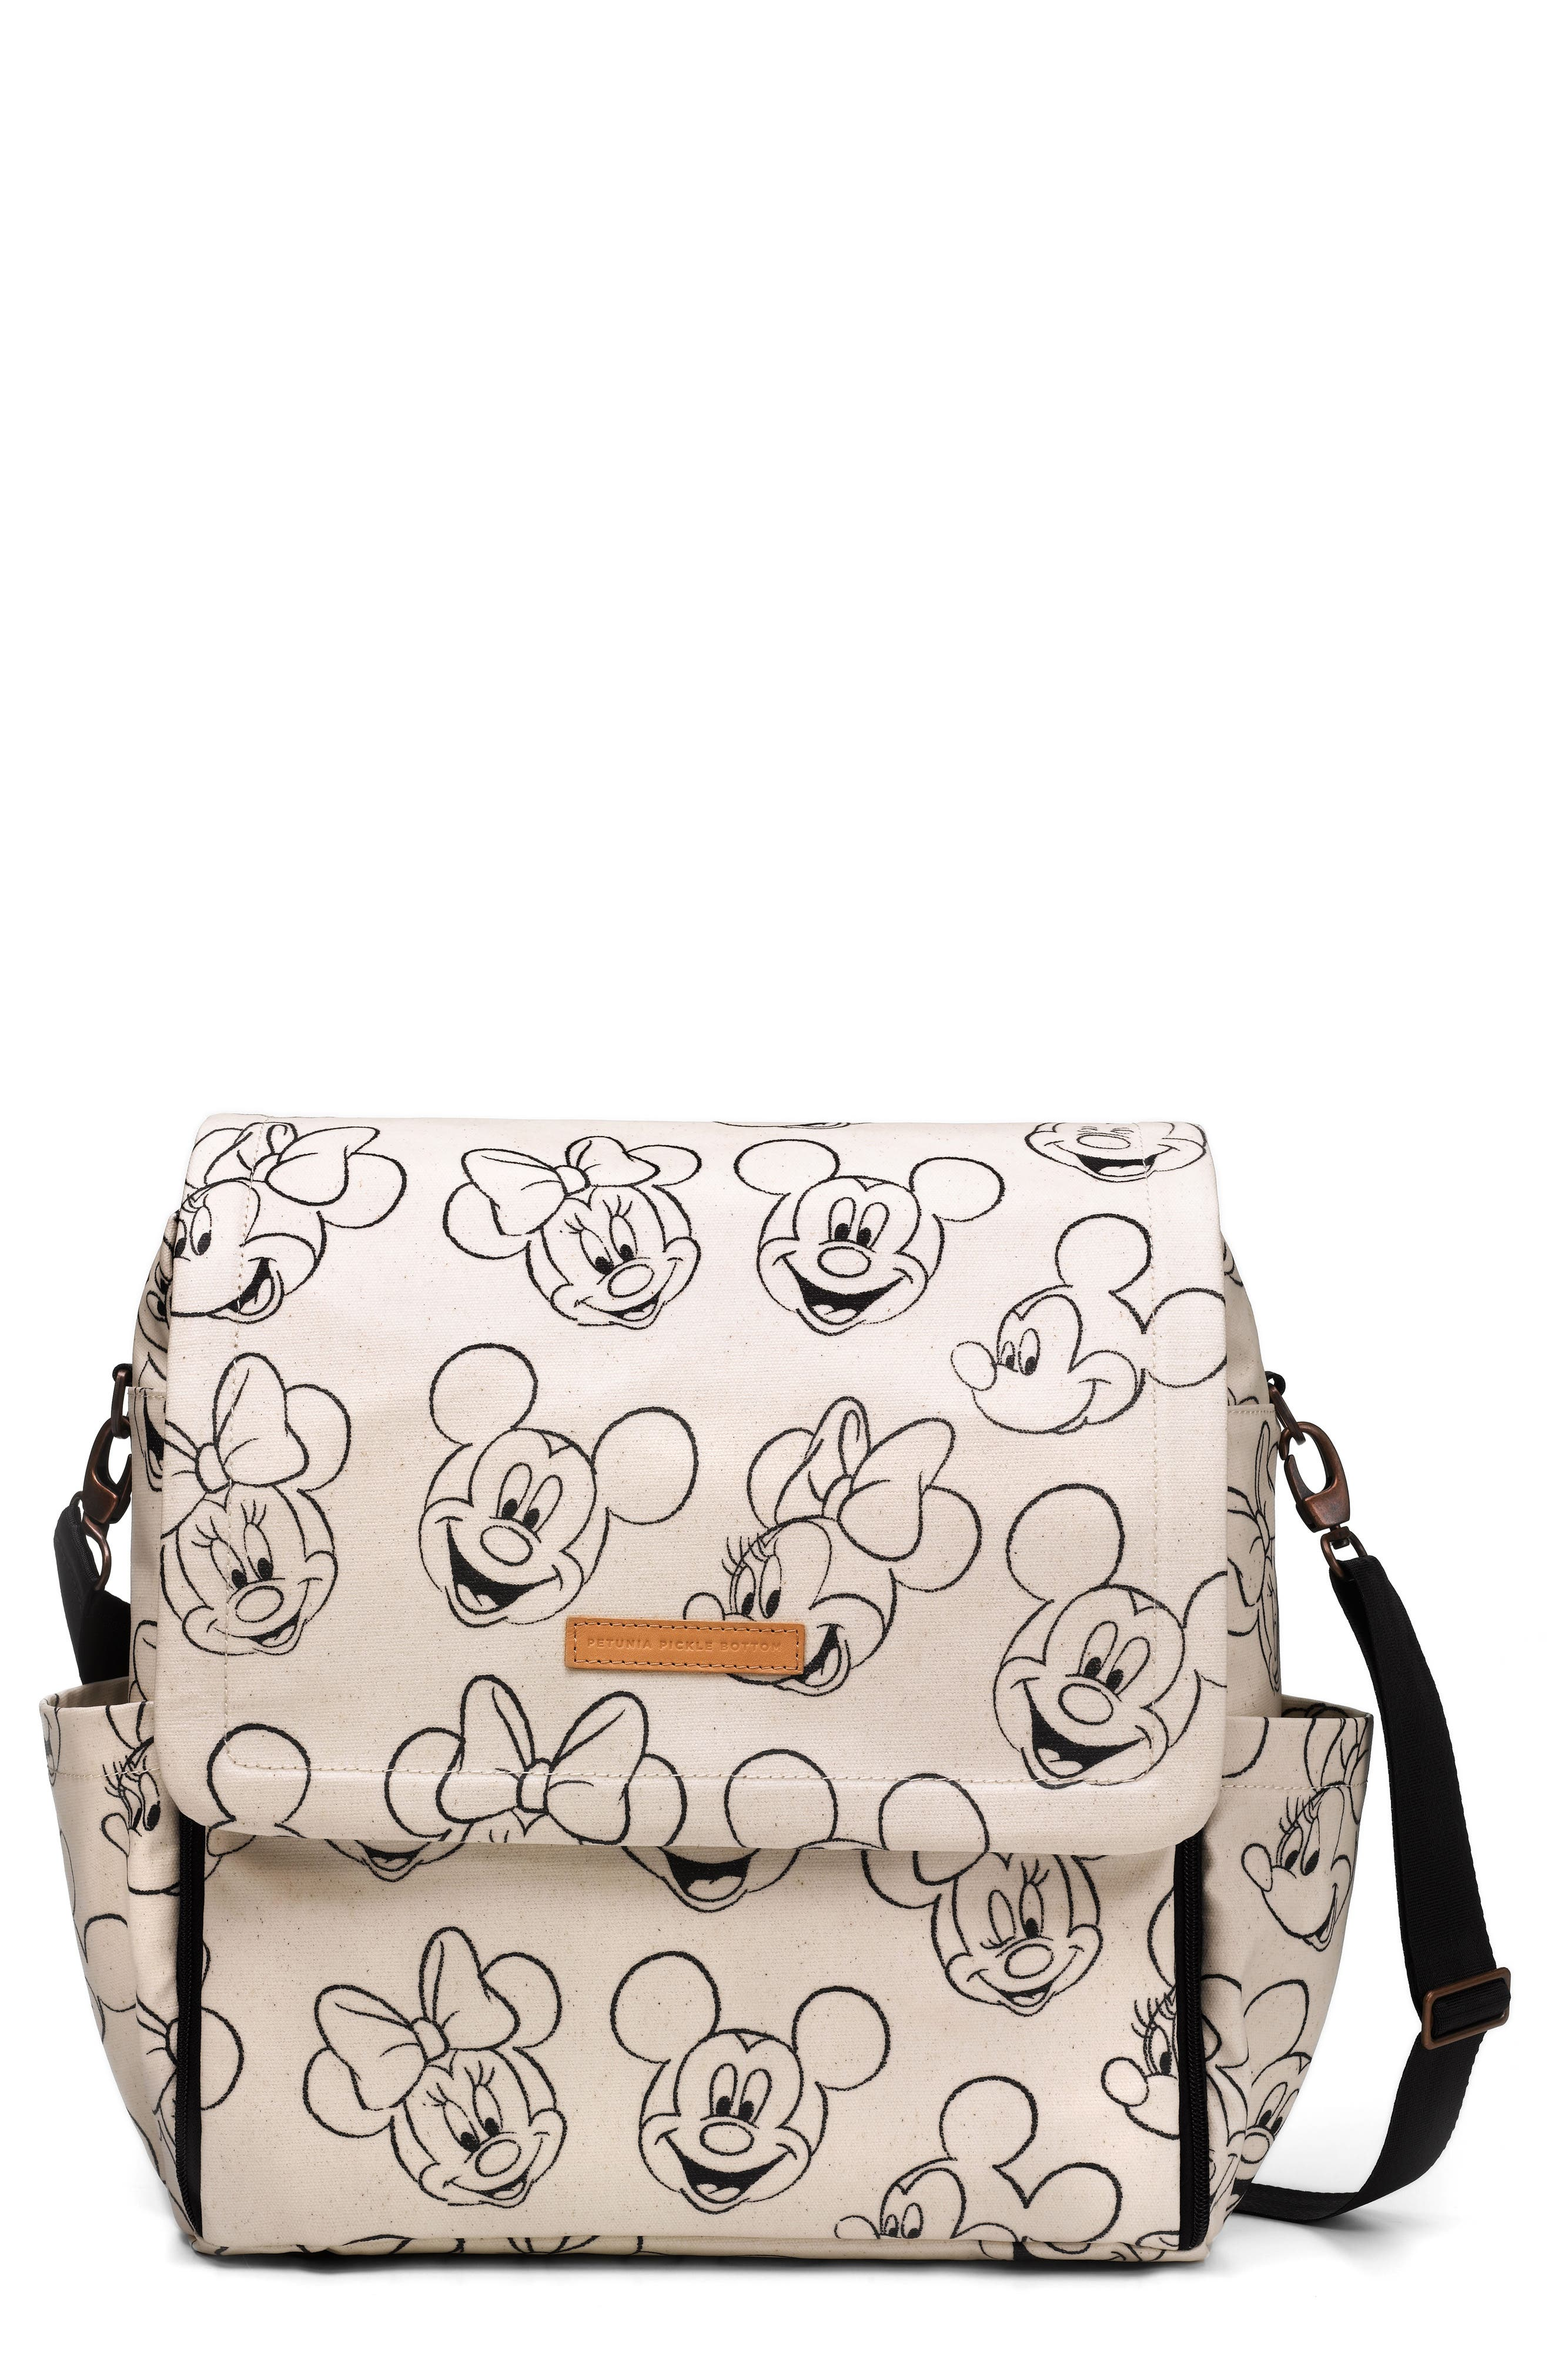 Boxy Backpack - Disney Diaper Bag,                             Main thumbnail 1, color,                             SKETCHBOOK MICKEY AND MINNIE